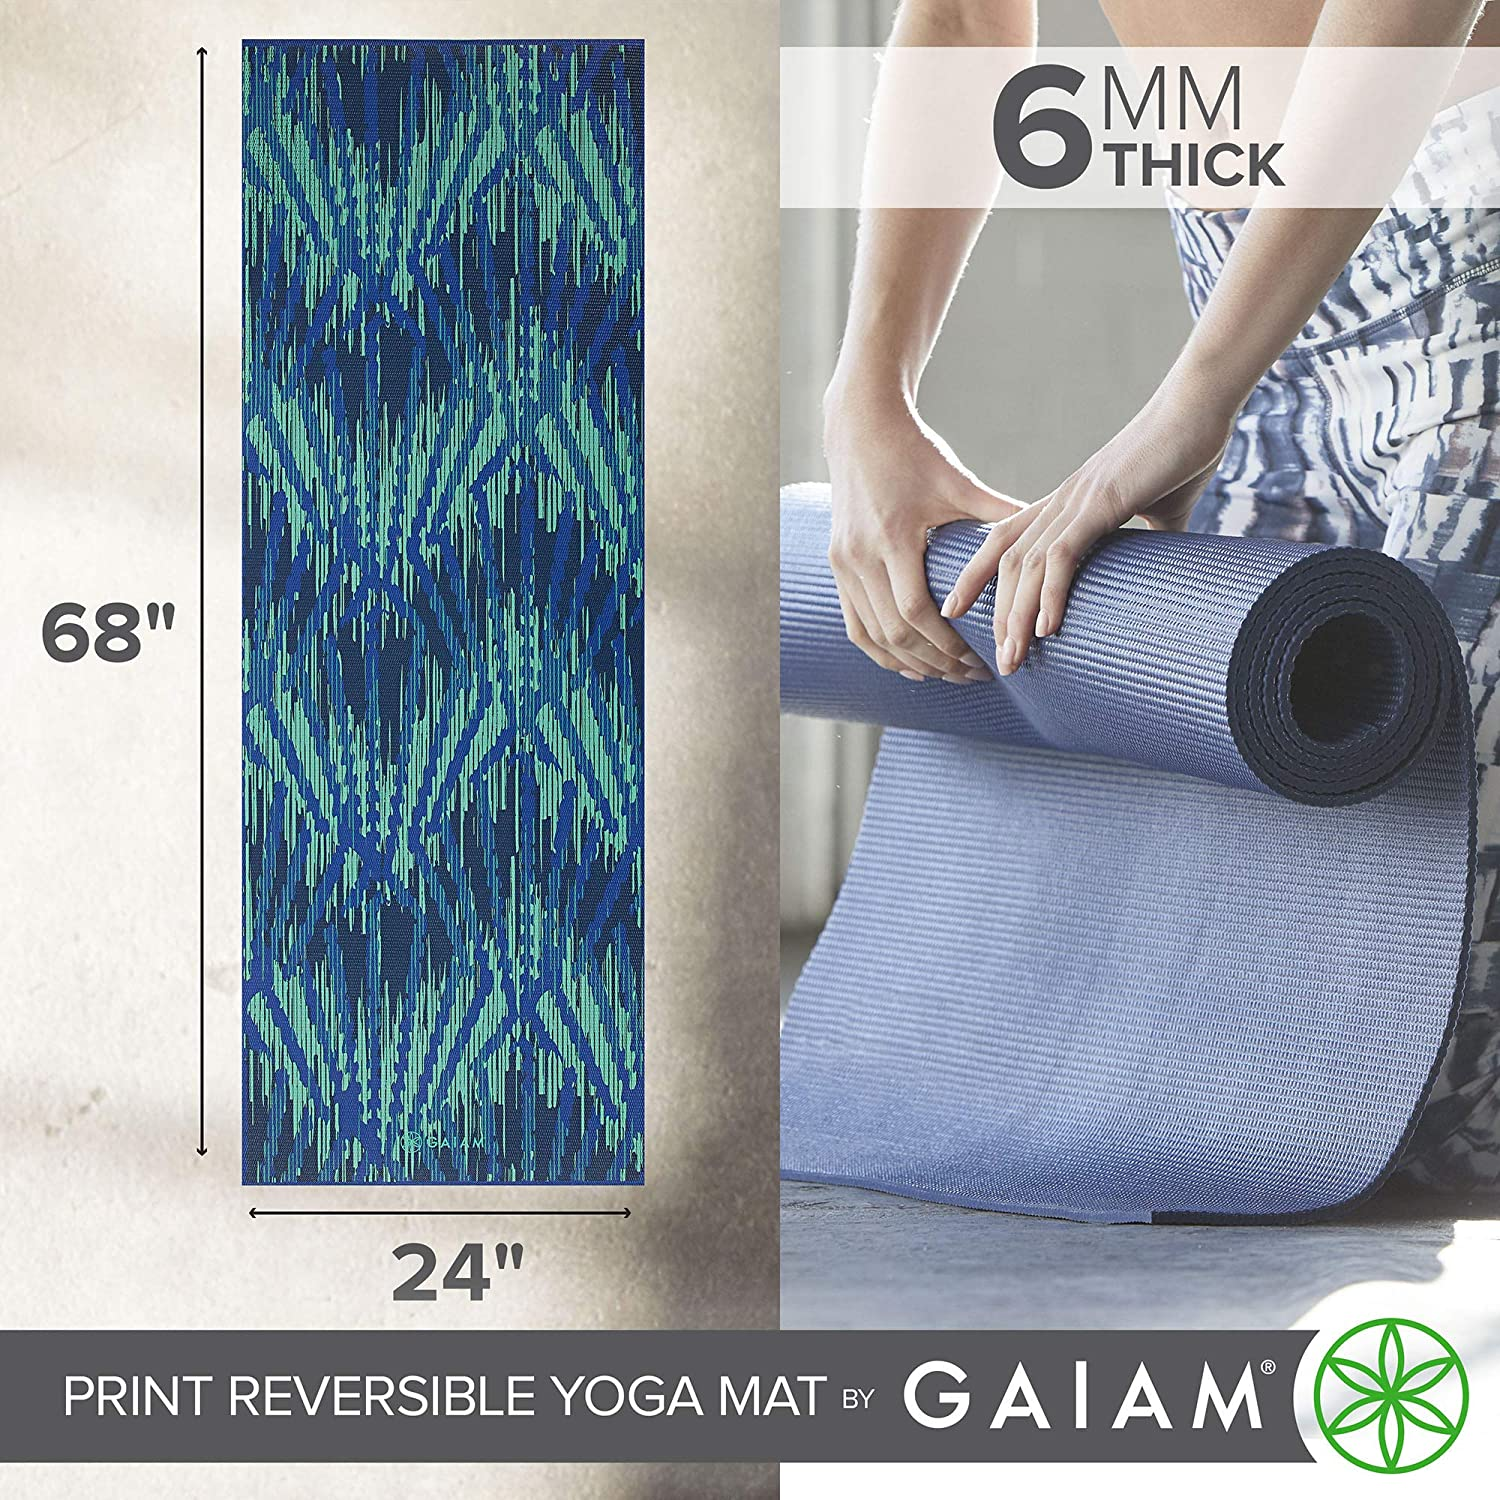 Premium 6mm Print Reversible Extra Thick Non Slip Exercise /& Fitness Mat for All Types of Yoga 68 x 24 x 6mm Thick Pilates /& Floor Workouts Gaiam Yoga Mat